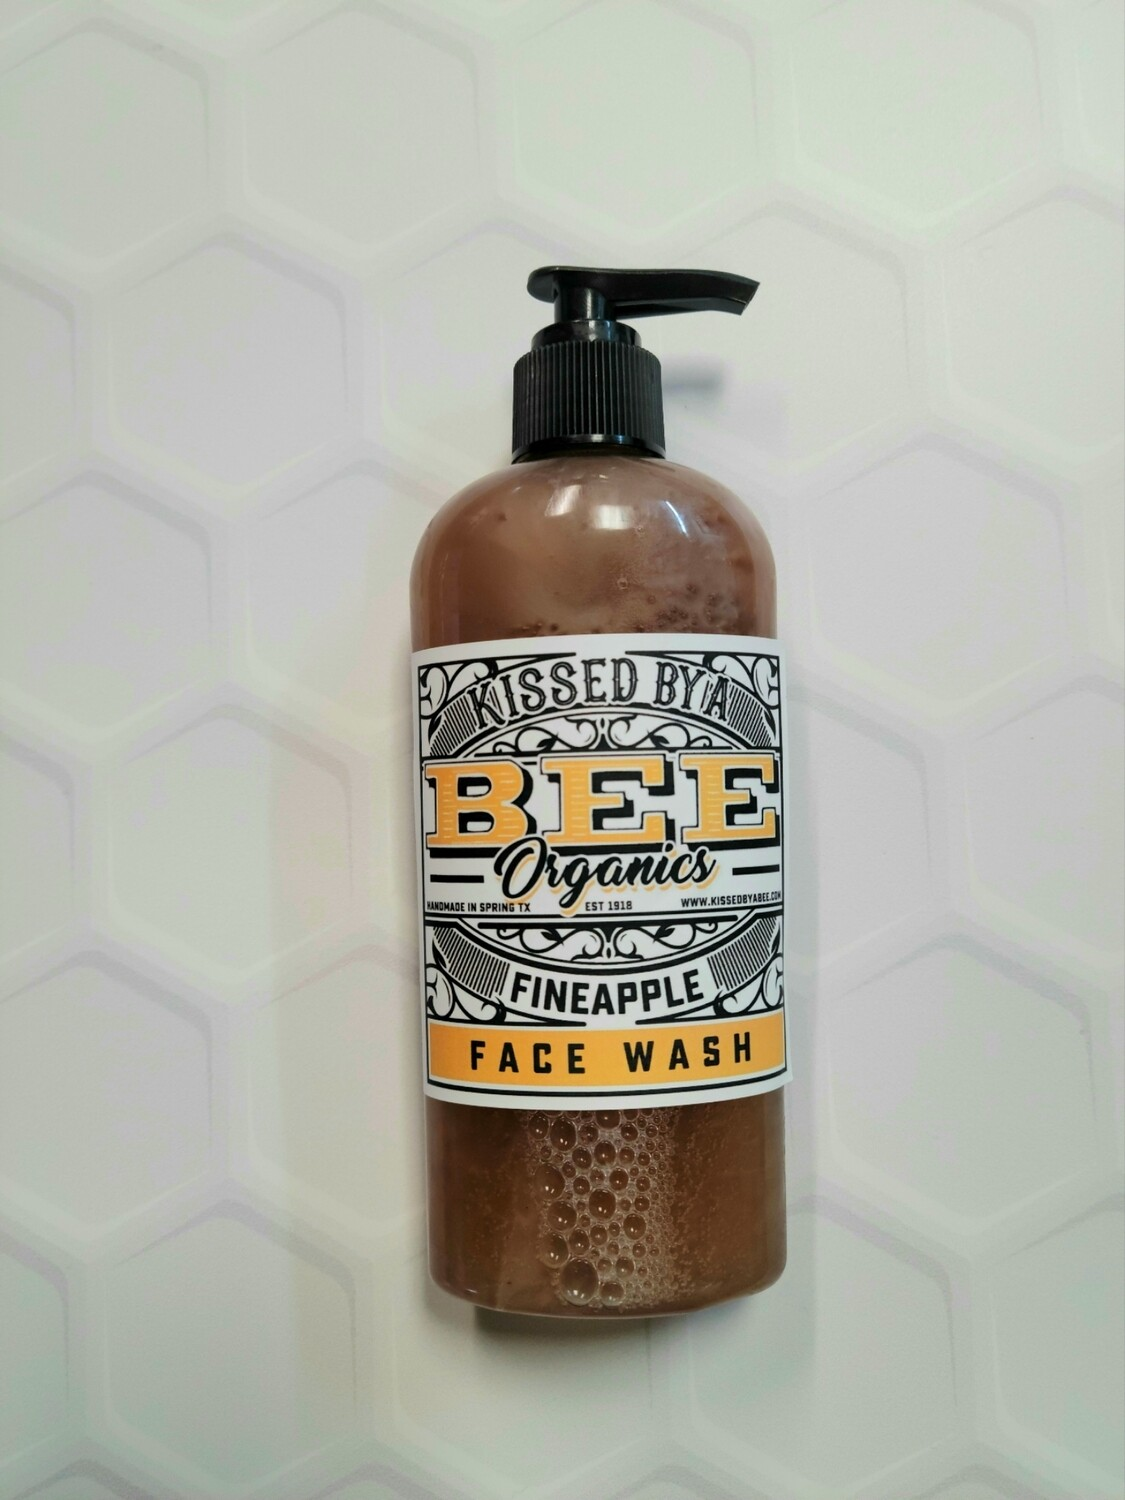 The Fineapple Face Wash